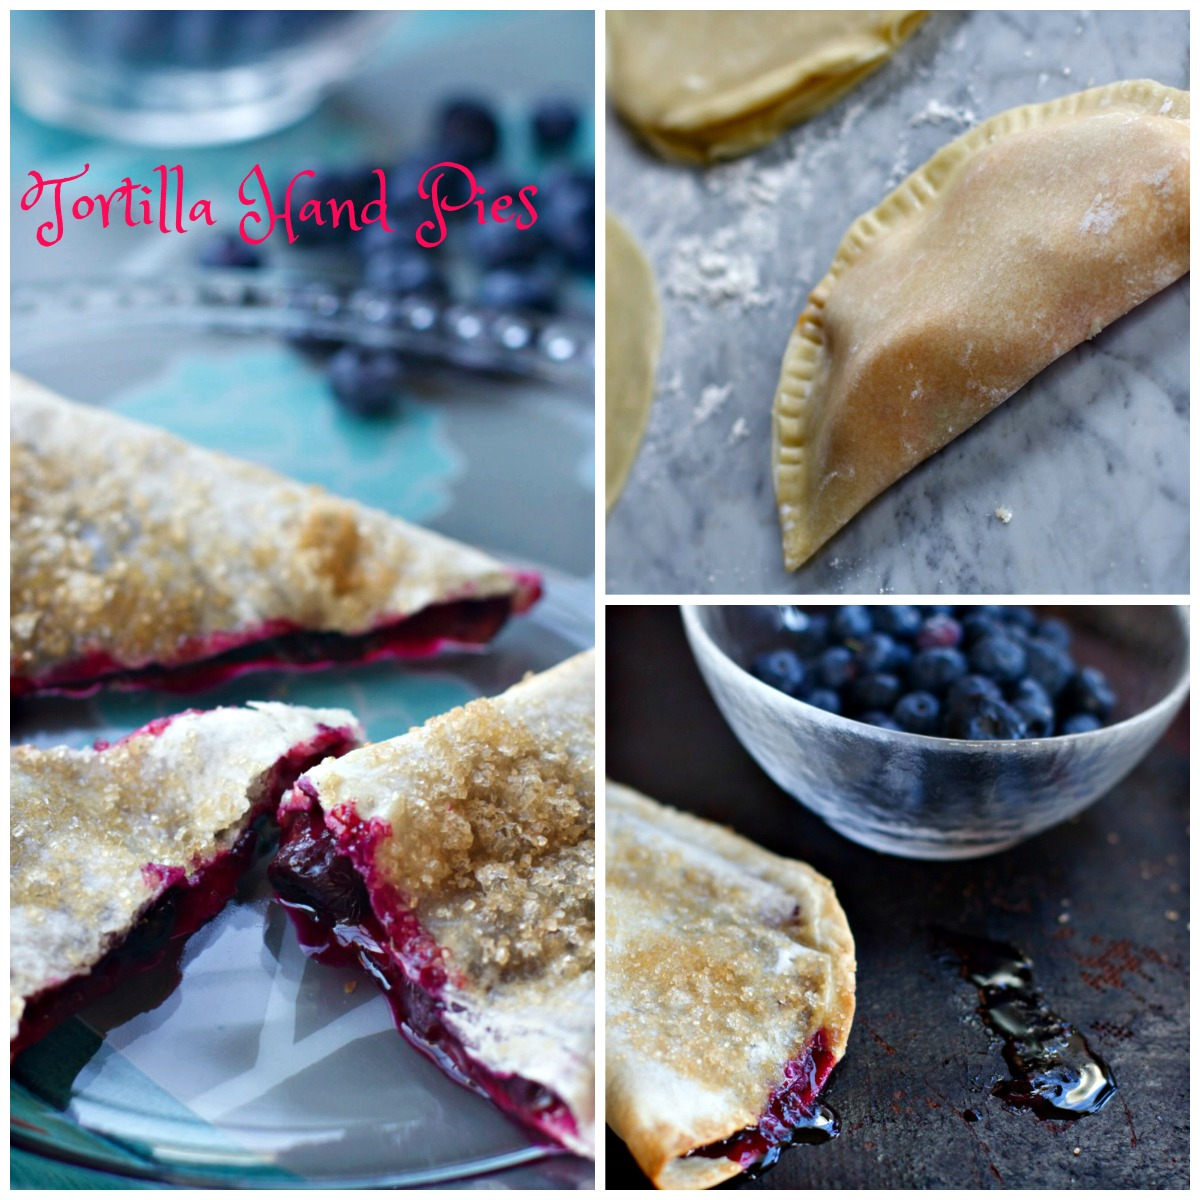 Tortilla Fruit Hand Pies from Spinach Tiger